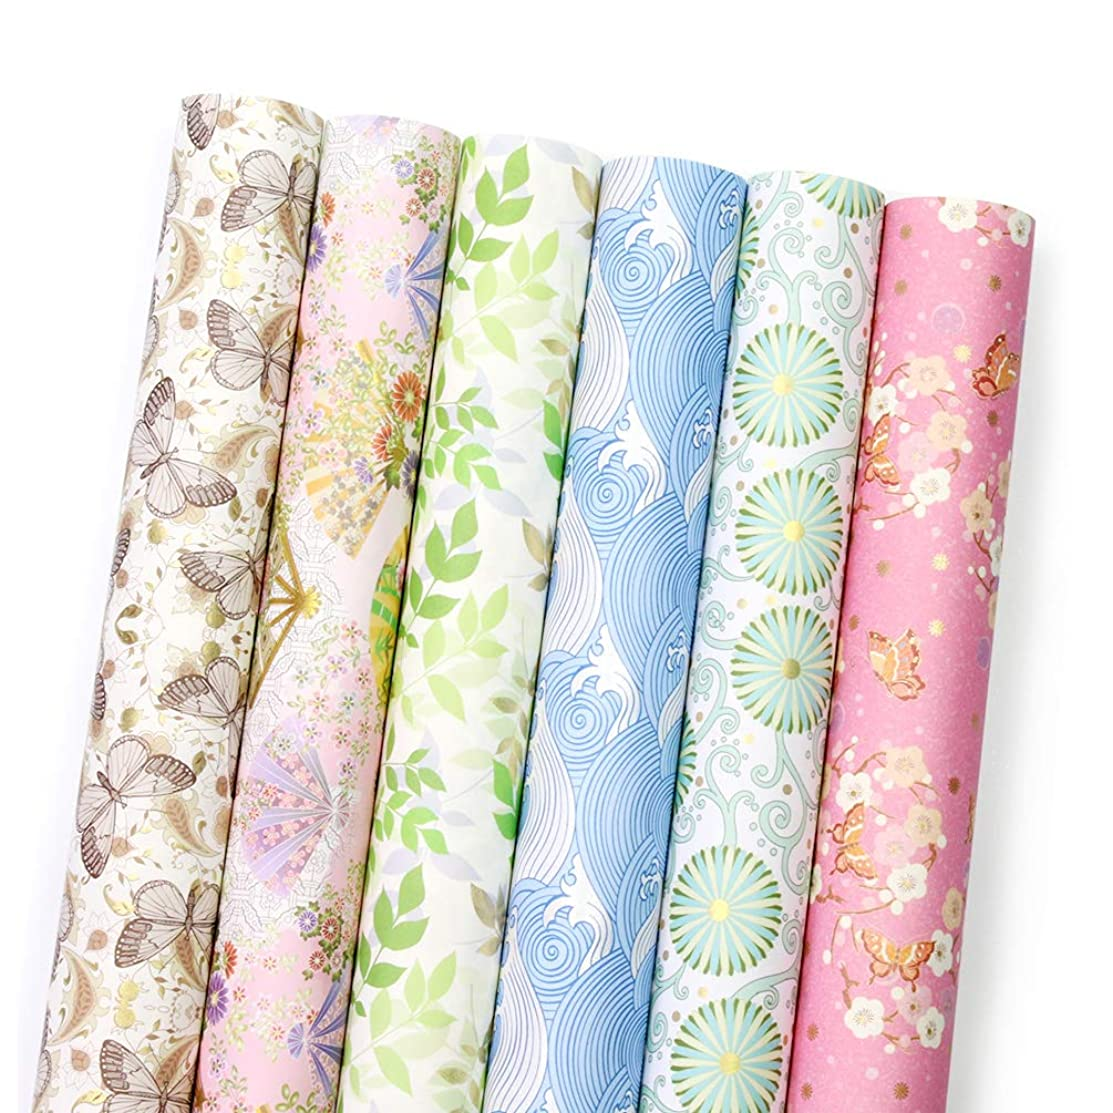 UNIQOOO Japanese Wrapping Paper 24 Sheets Precut 6 Assorted Designs,Packed 3 Rolls,Kimono Washi Thick Paper,Size 27? x 17